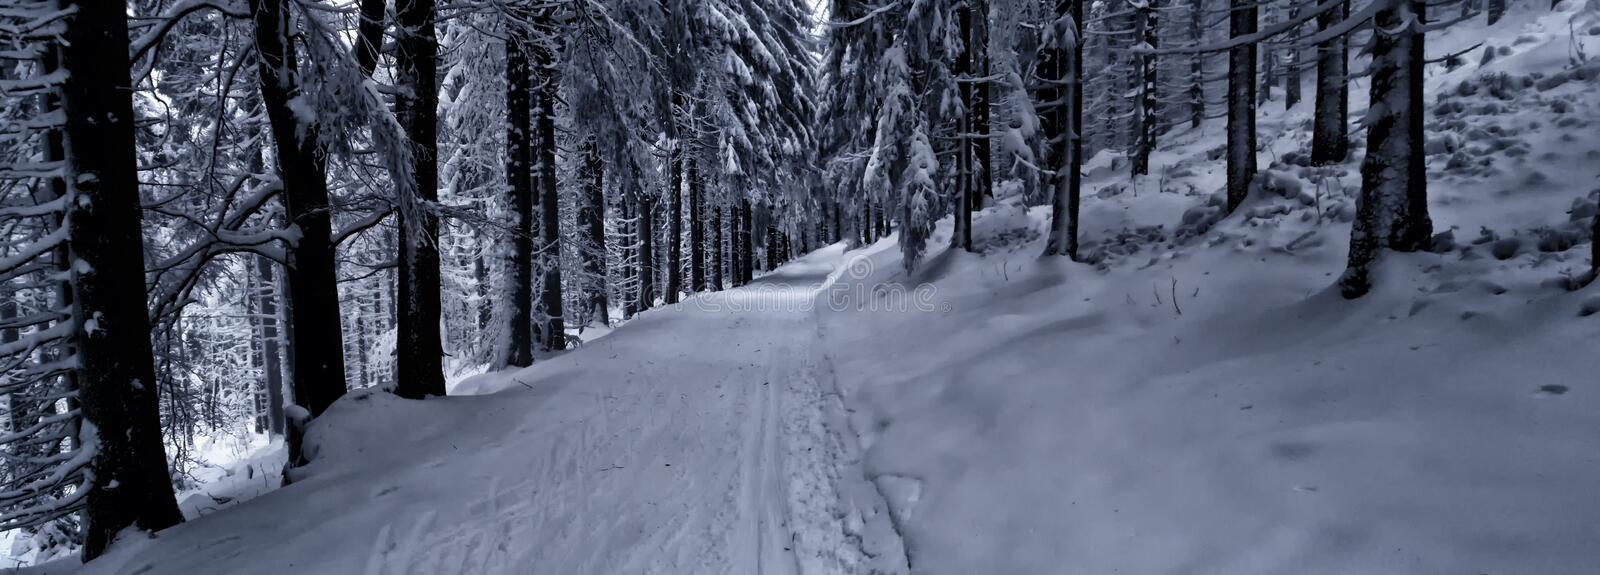 Cross country track in the forest at winter daylight royalty free stock photo